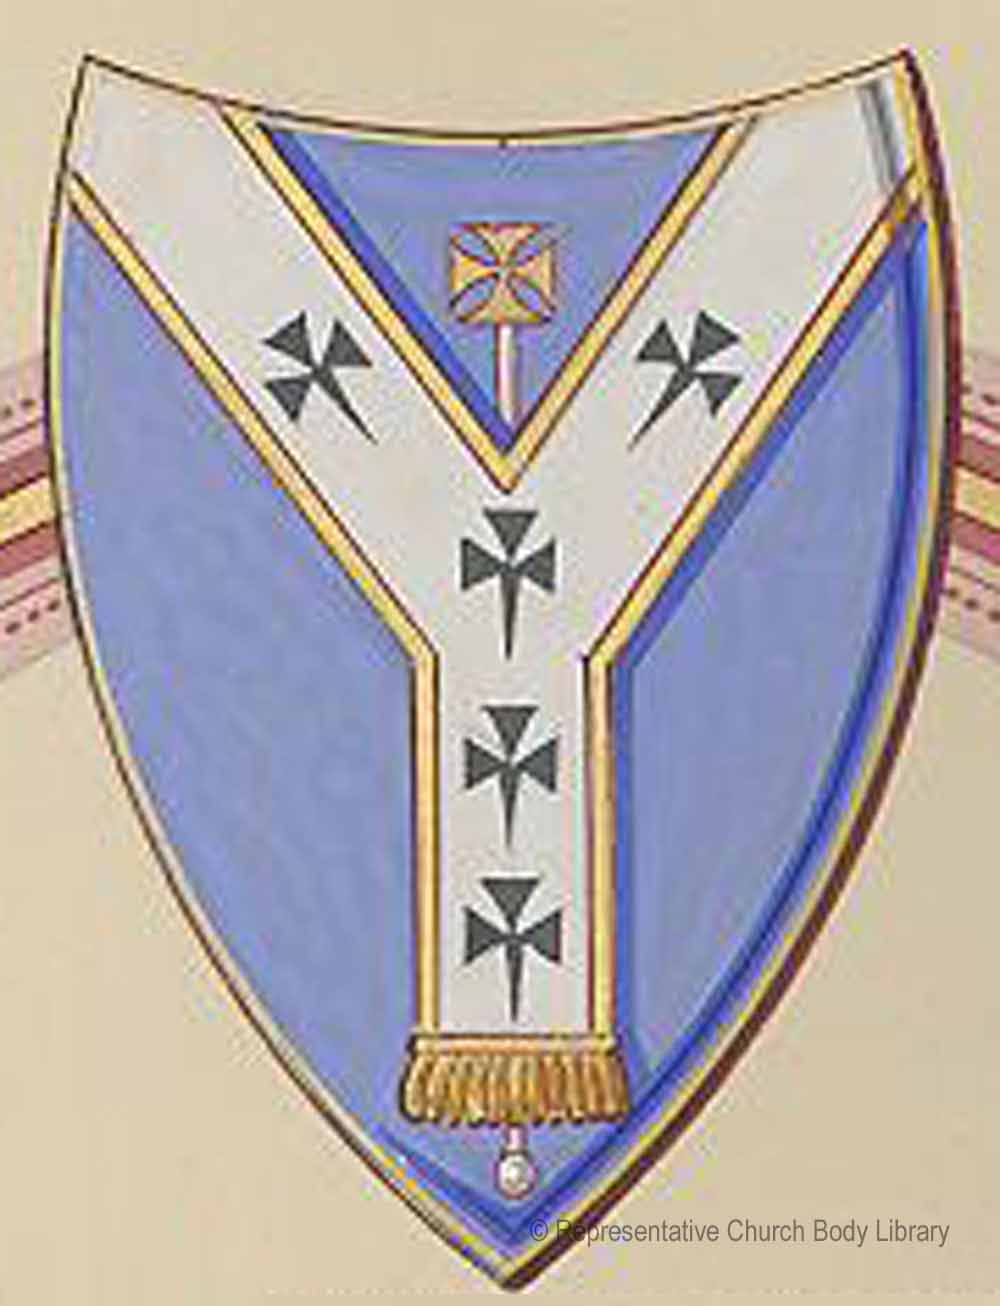 The coat of arms of the diocese of Dublin